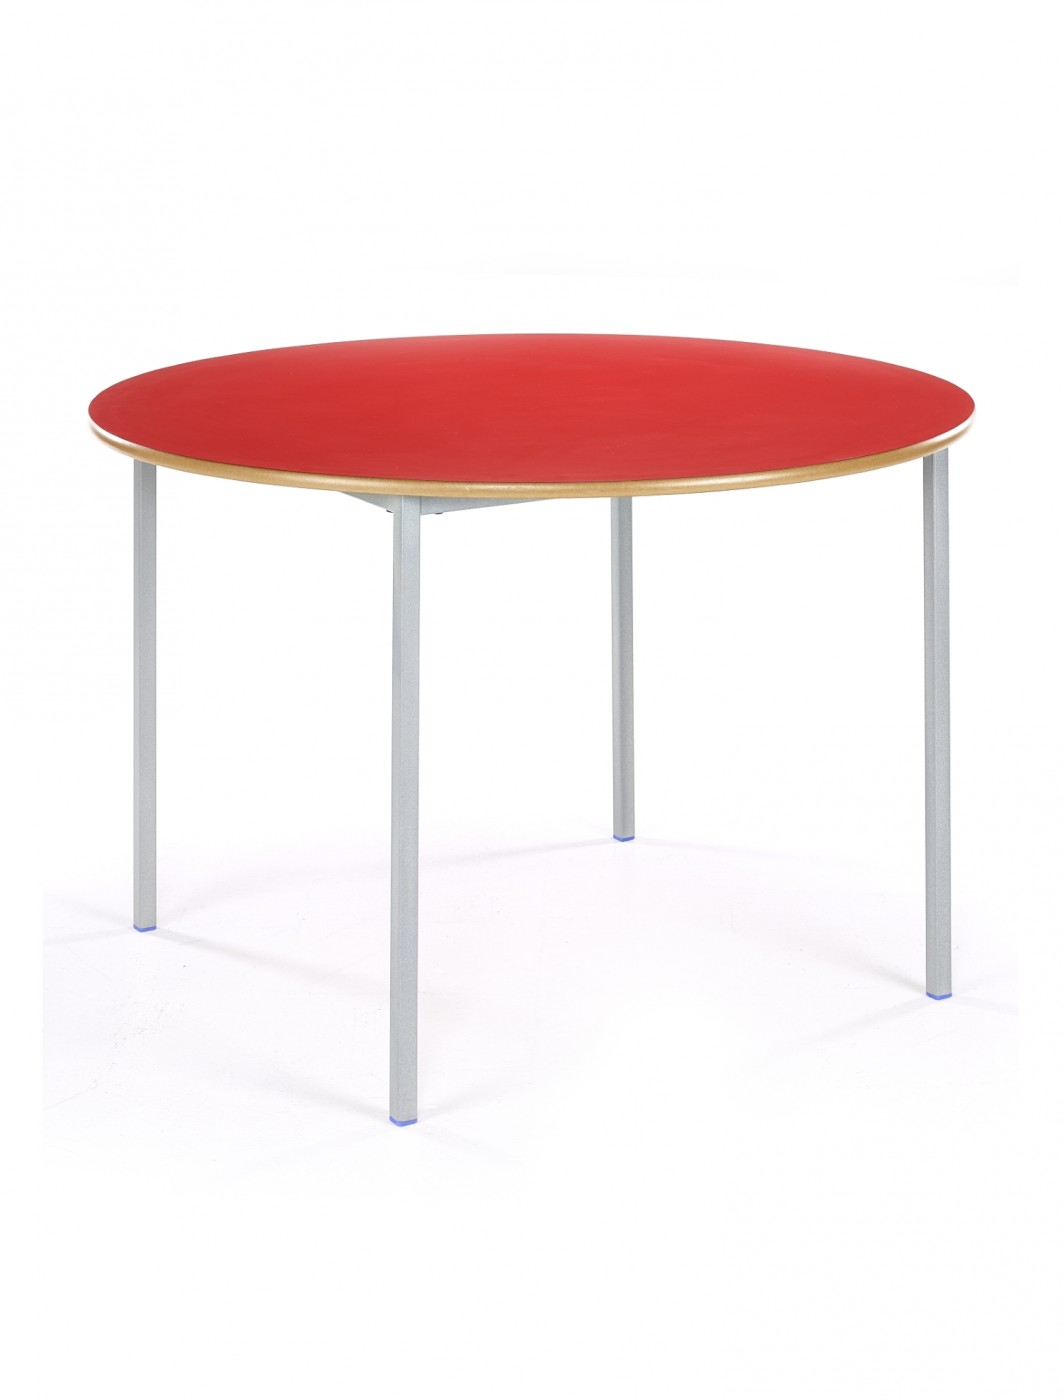 Classroom Tables - 1200mm Circular Tables SQSS-12C-MD - Fully Welded